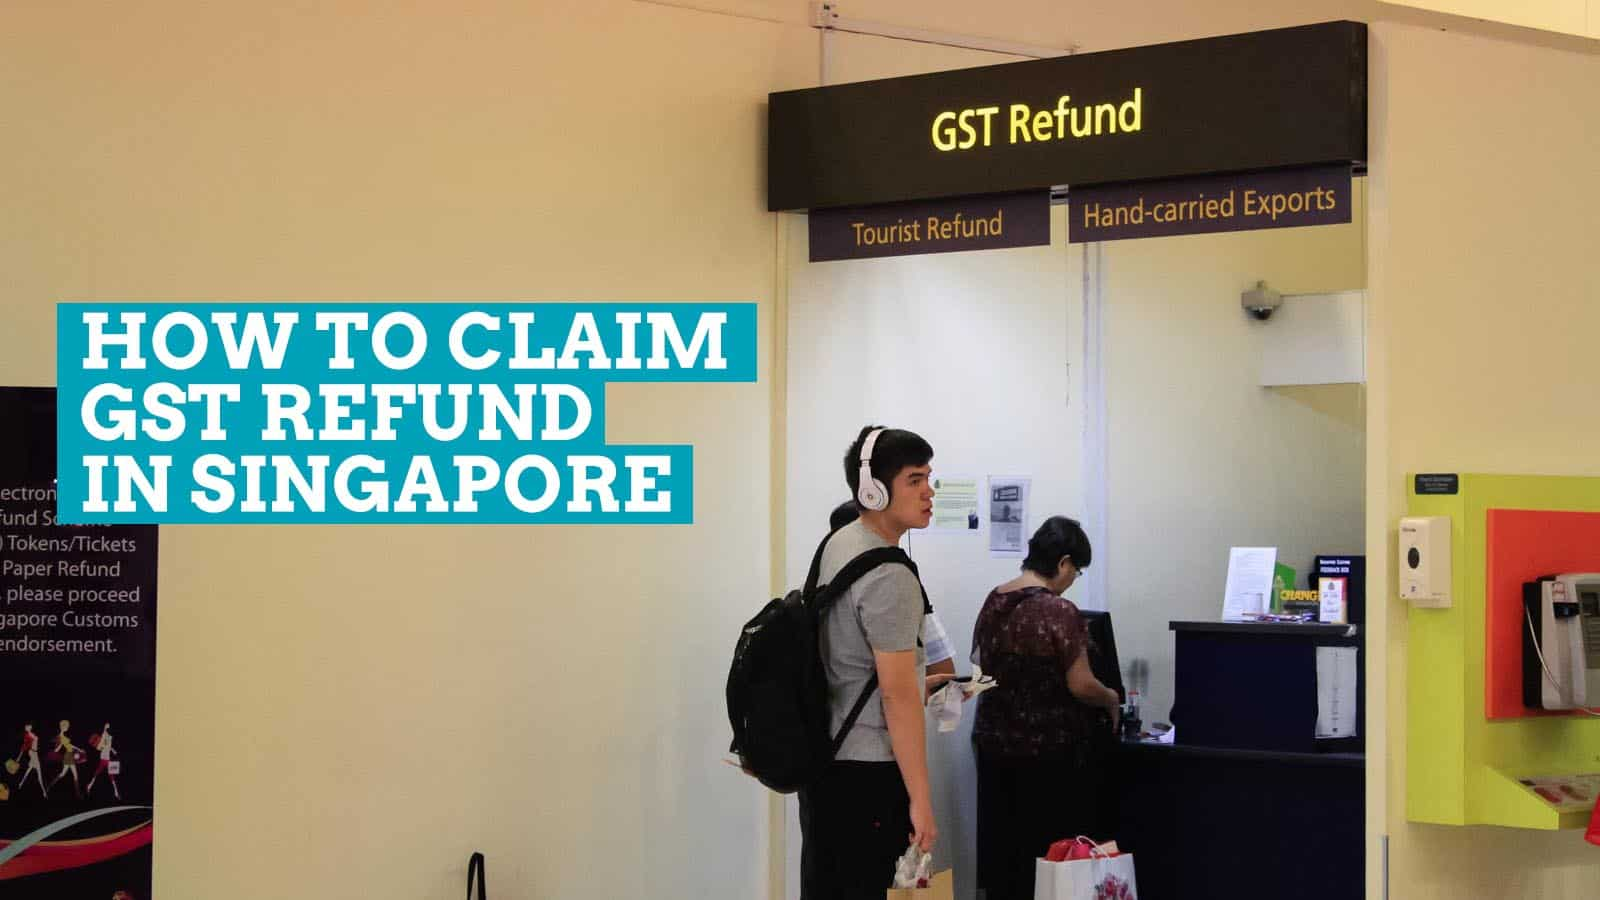 How to Claim GST Refund in Singapore